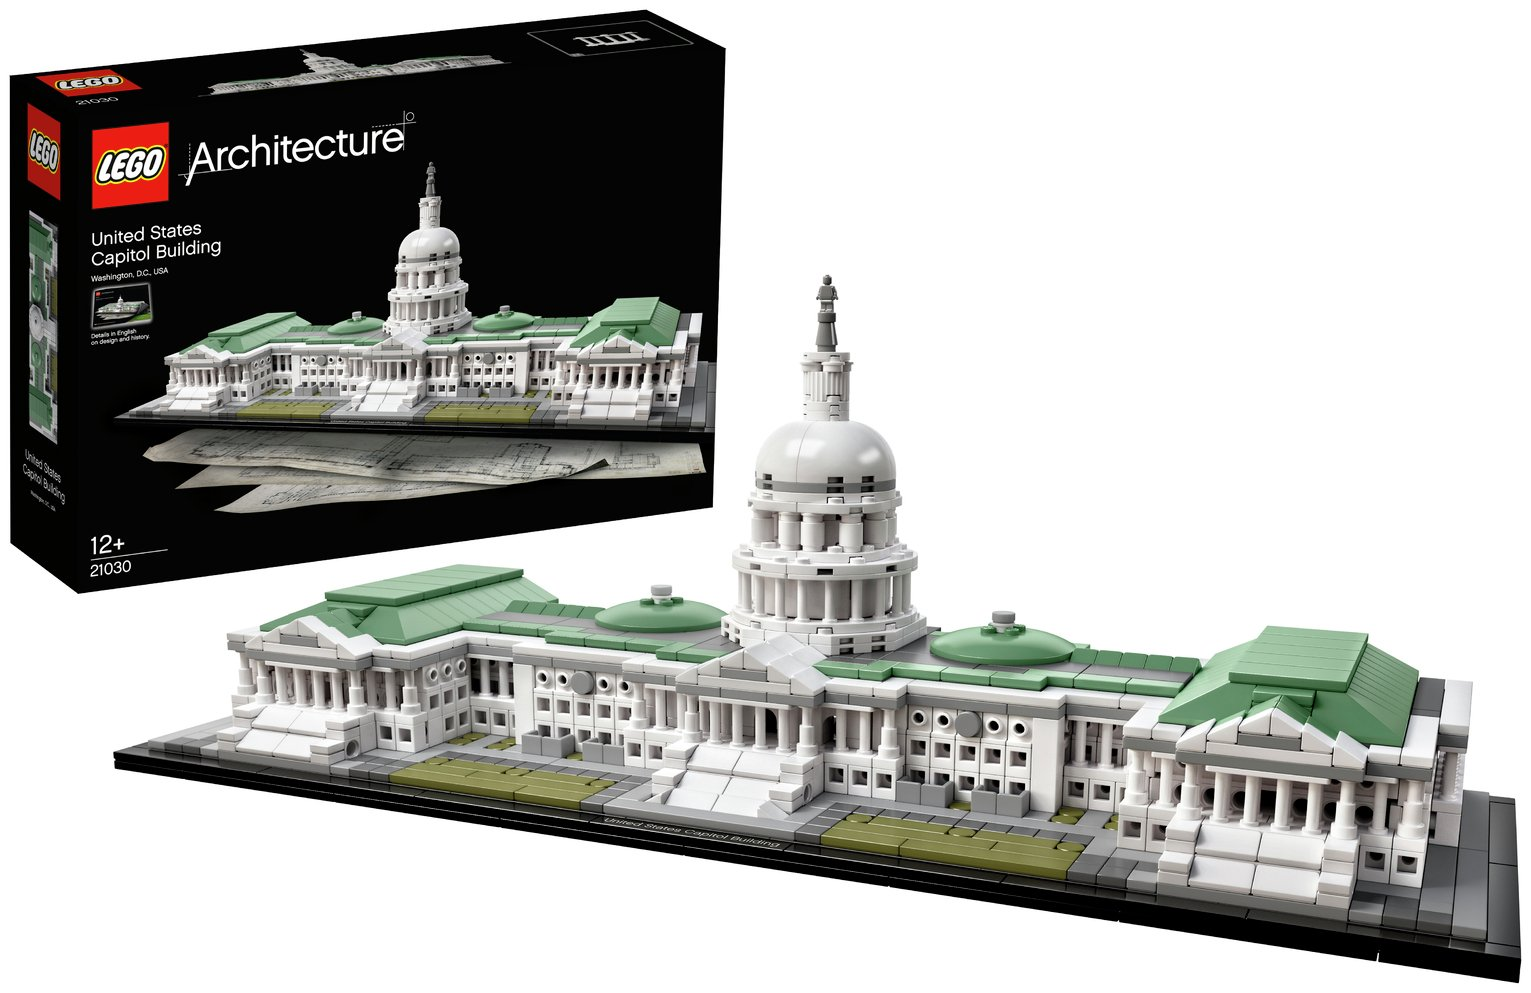 LEGO - Architecture United States Capitol Building Set from LEGO